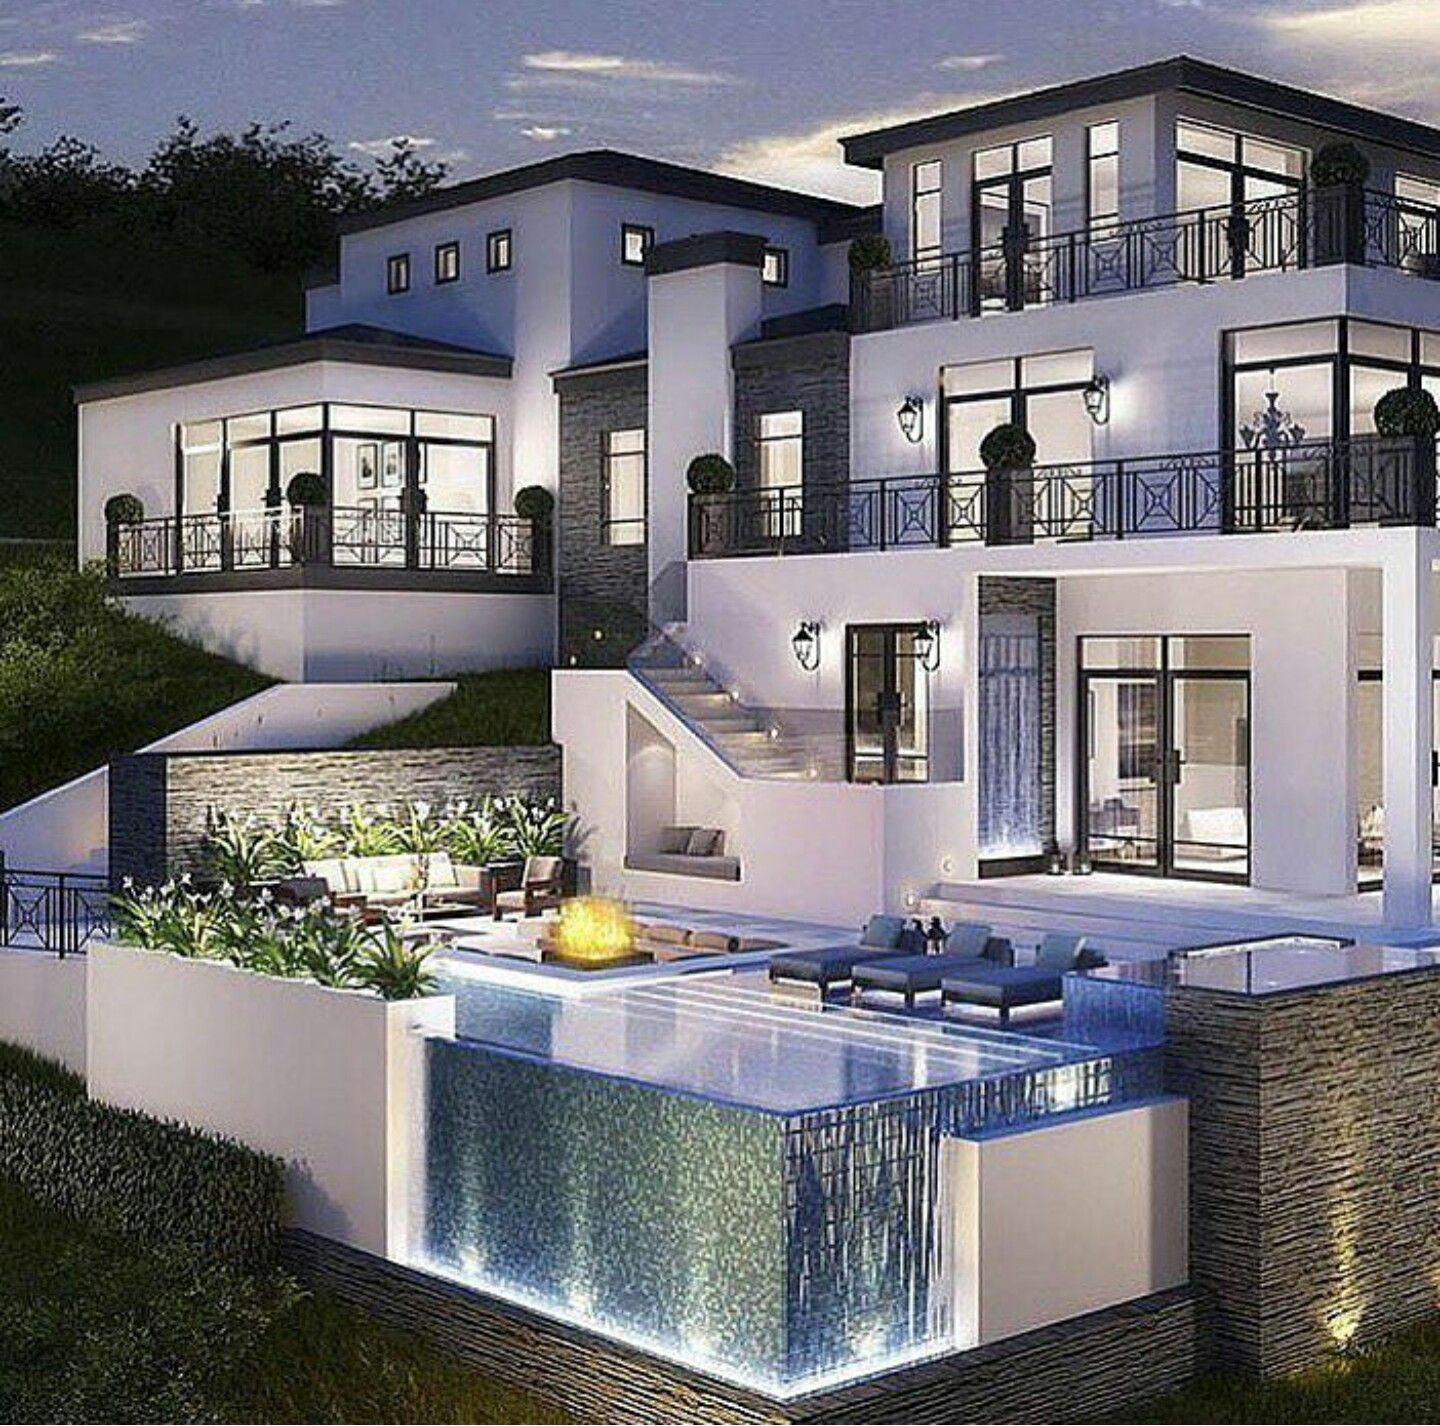 Pin By Mohamed O On Modern Villas: Amazing Los Angeles Hollywood Hills Mansion With Infinity